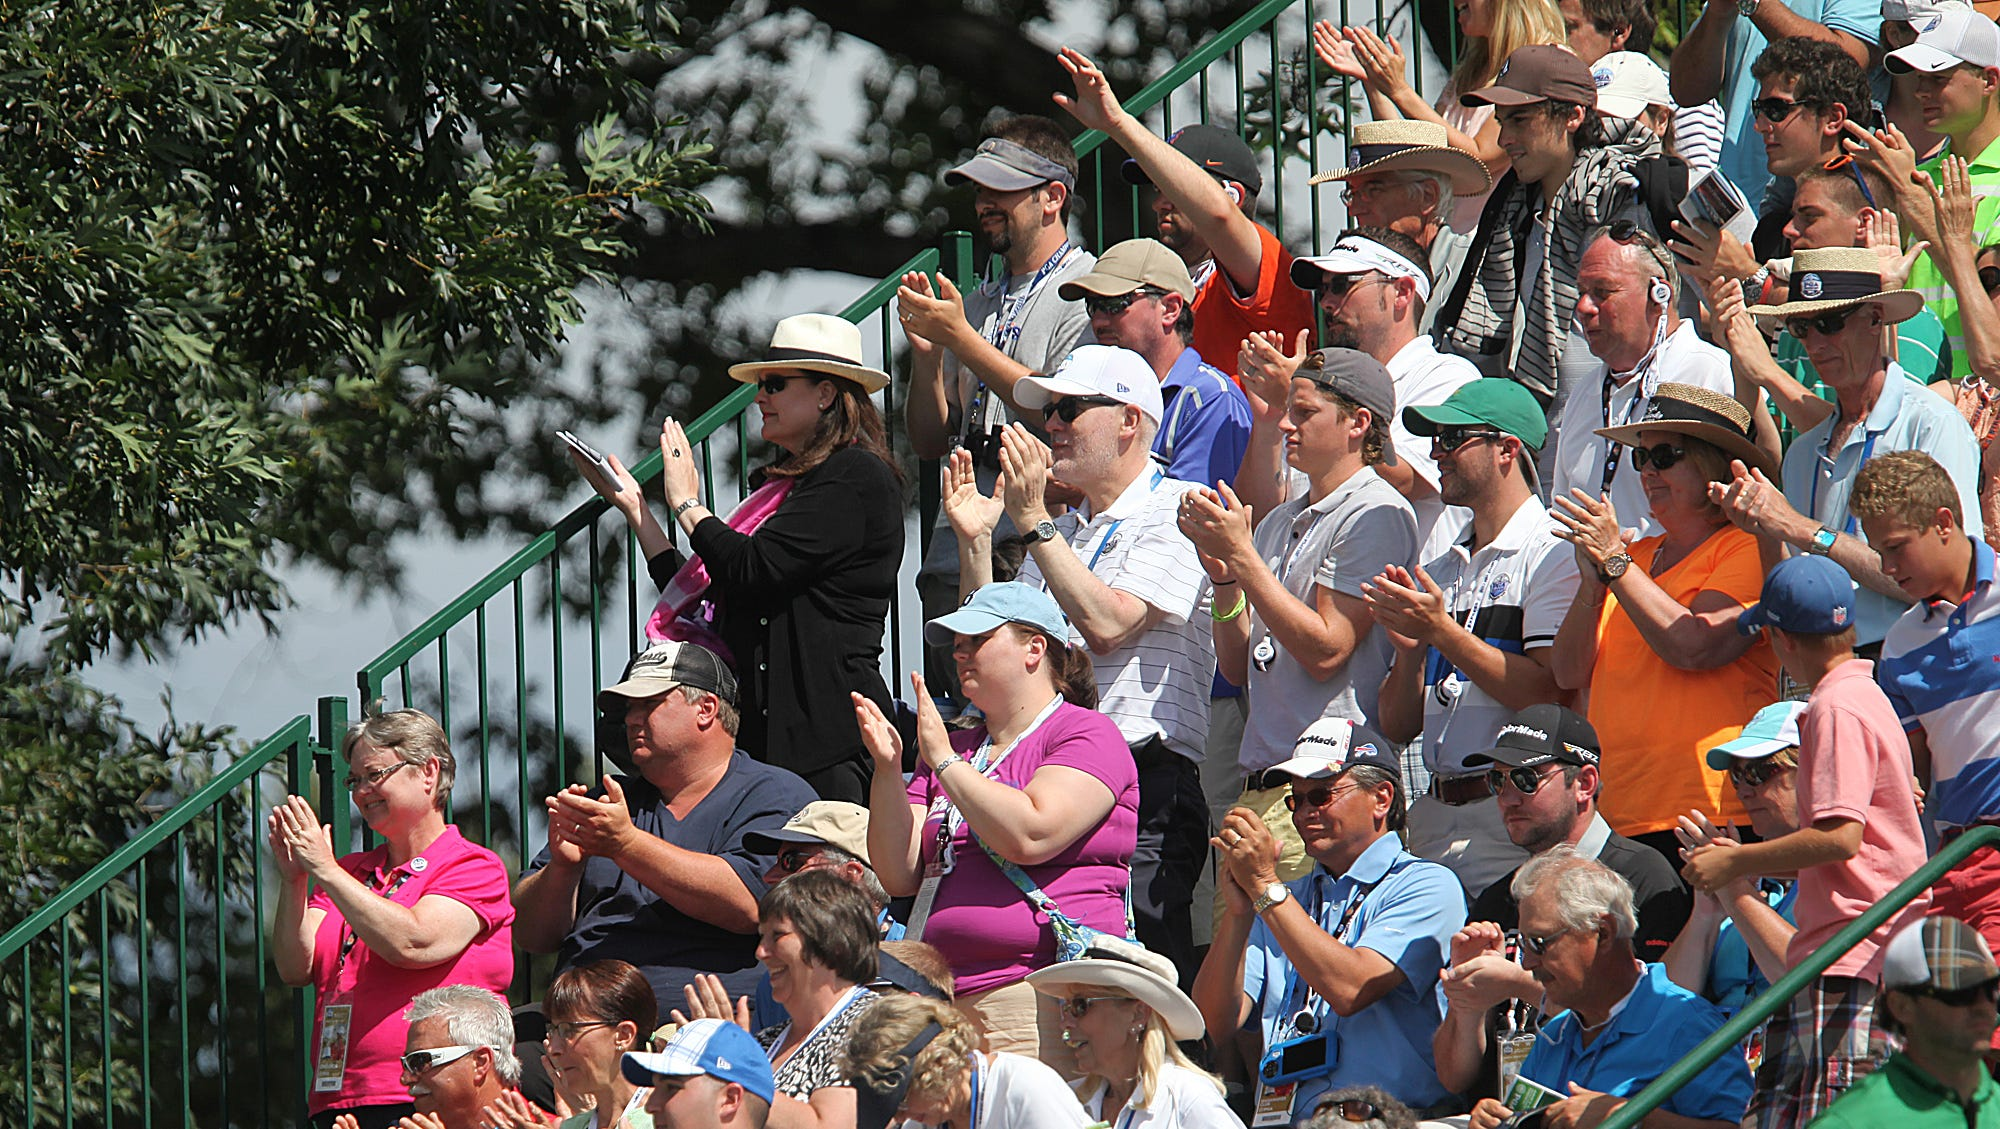 Fans applaud Phil Mickelson as he leaves 18 after finishing his last round of golf at the 95th PGA Championship at Oak Hill. P